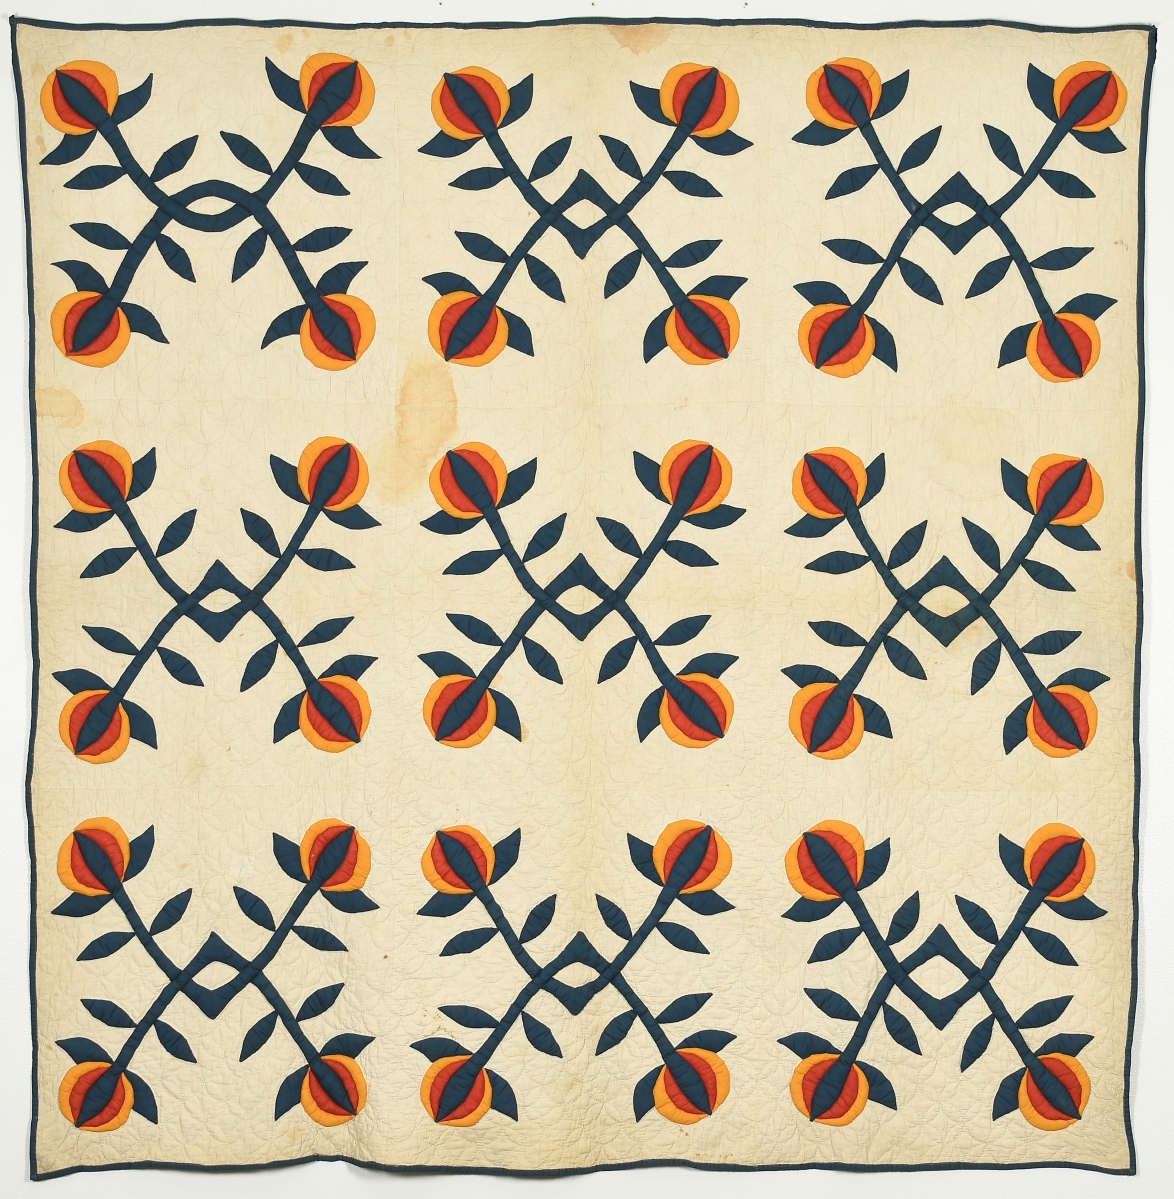 Pomegranate pattern quilt by Isabella (Bell) Phillips Boyd (1862-1953), late 1800s. Cotton, 78½ by 76¼ inches. Gift of Dr Paul M. Goggans.